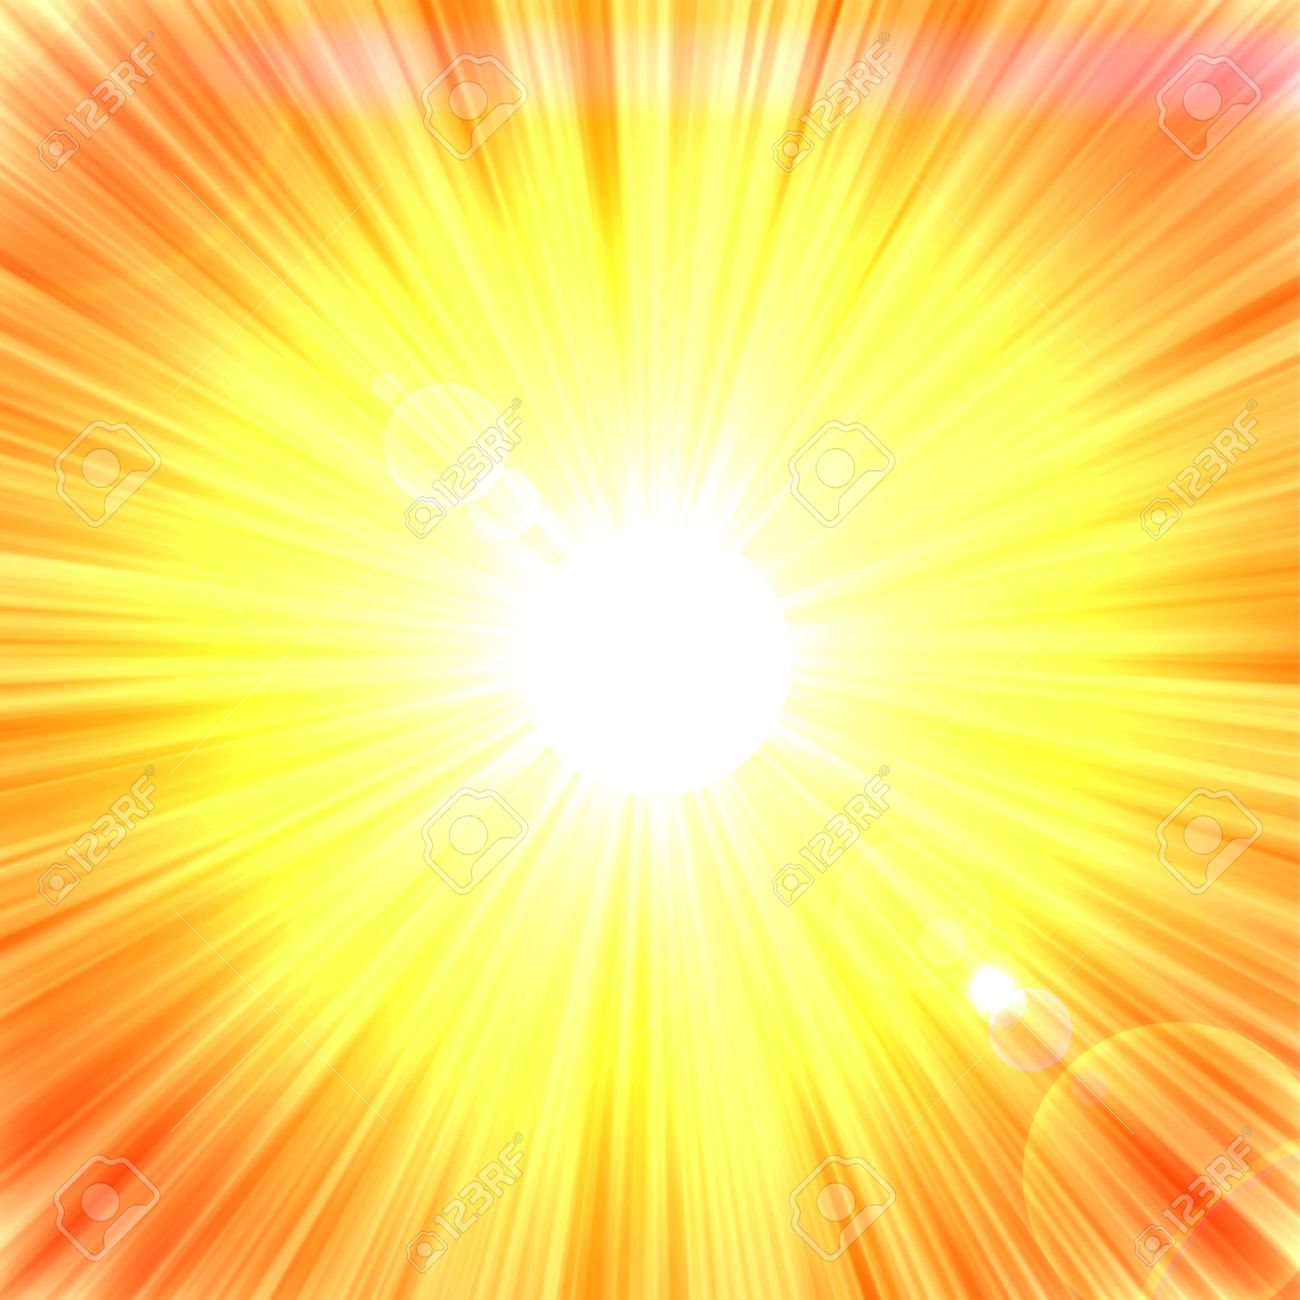 Image result for images of sun rays